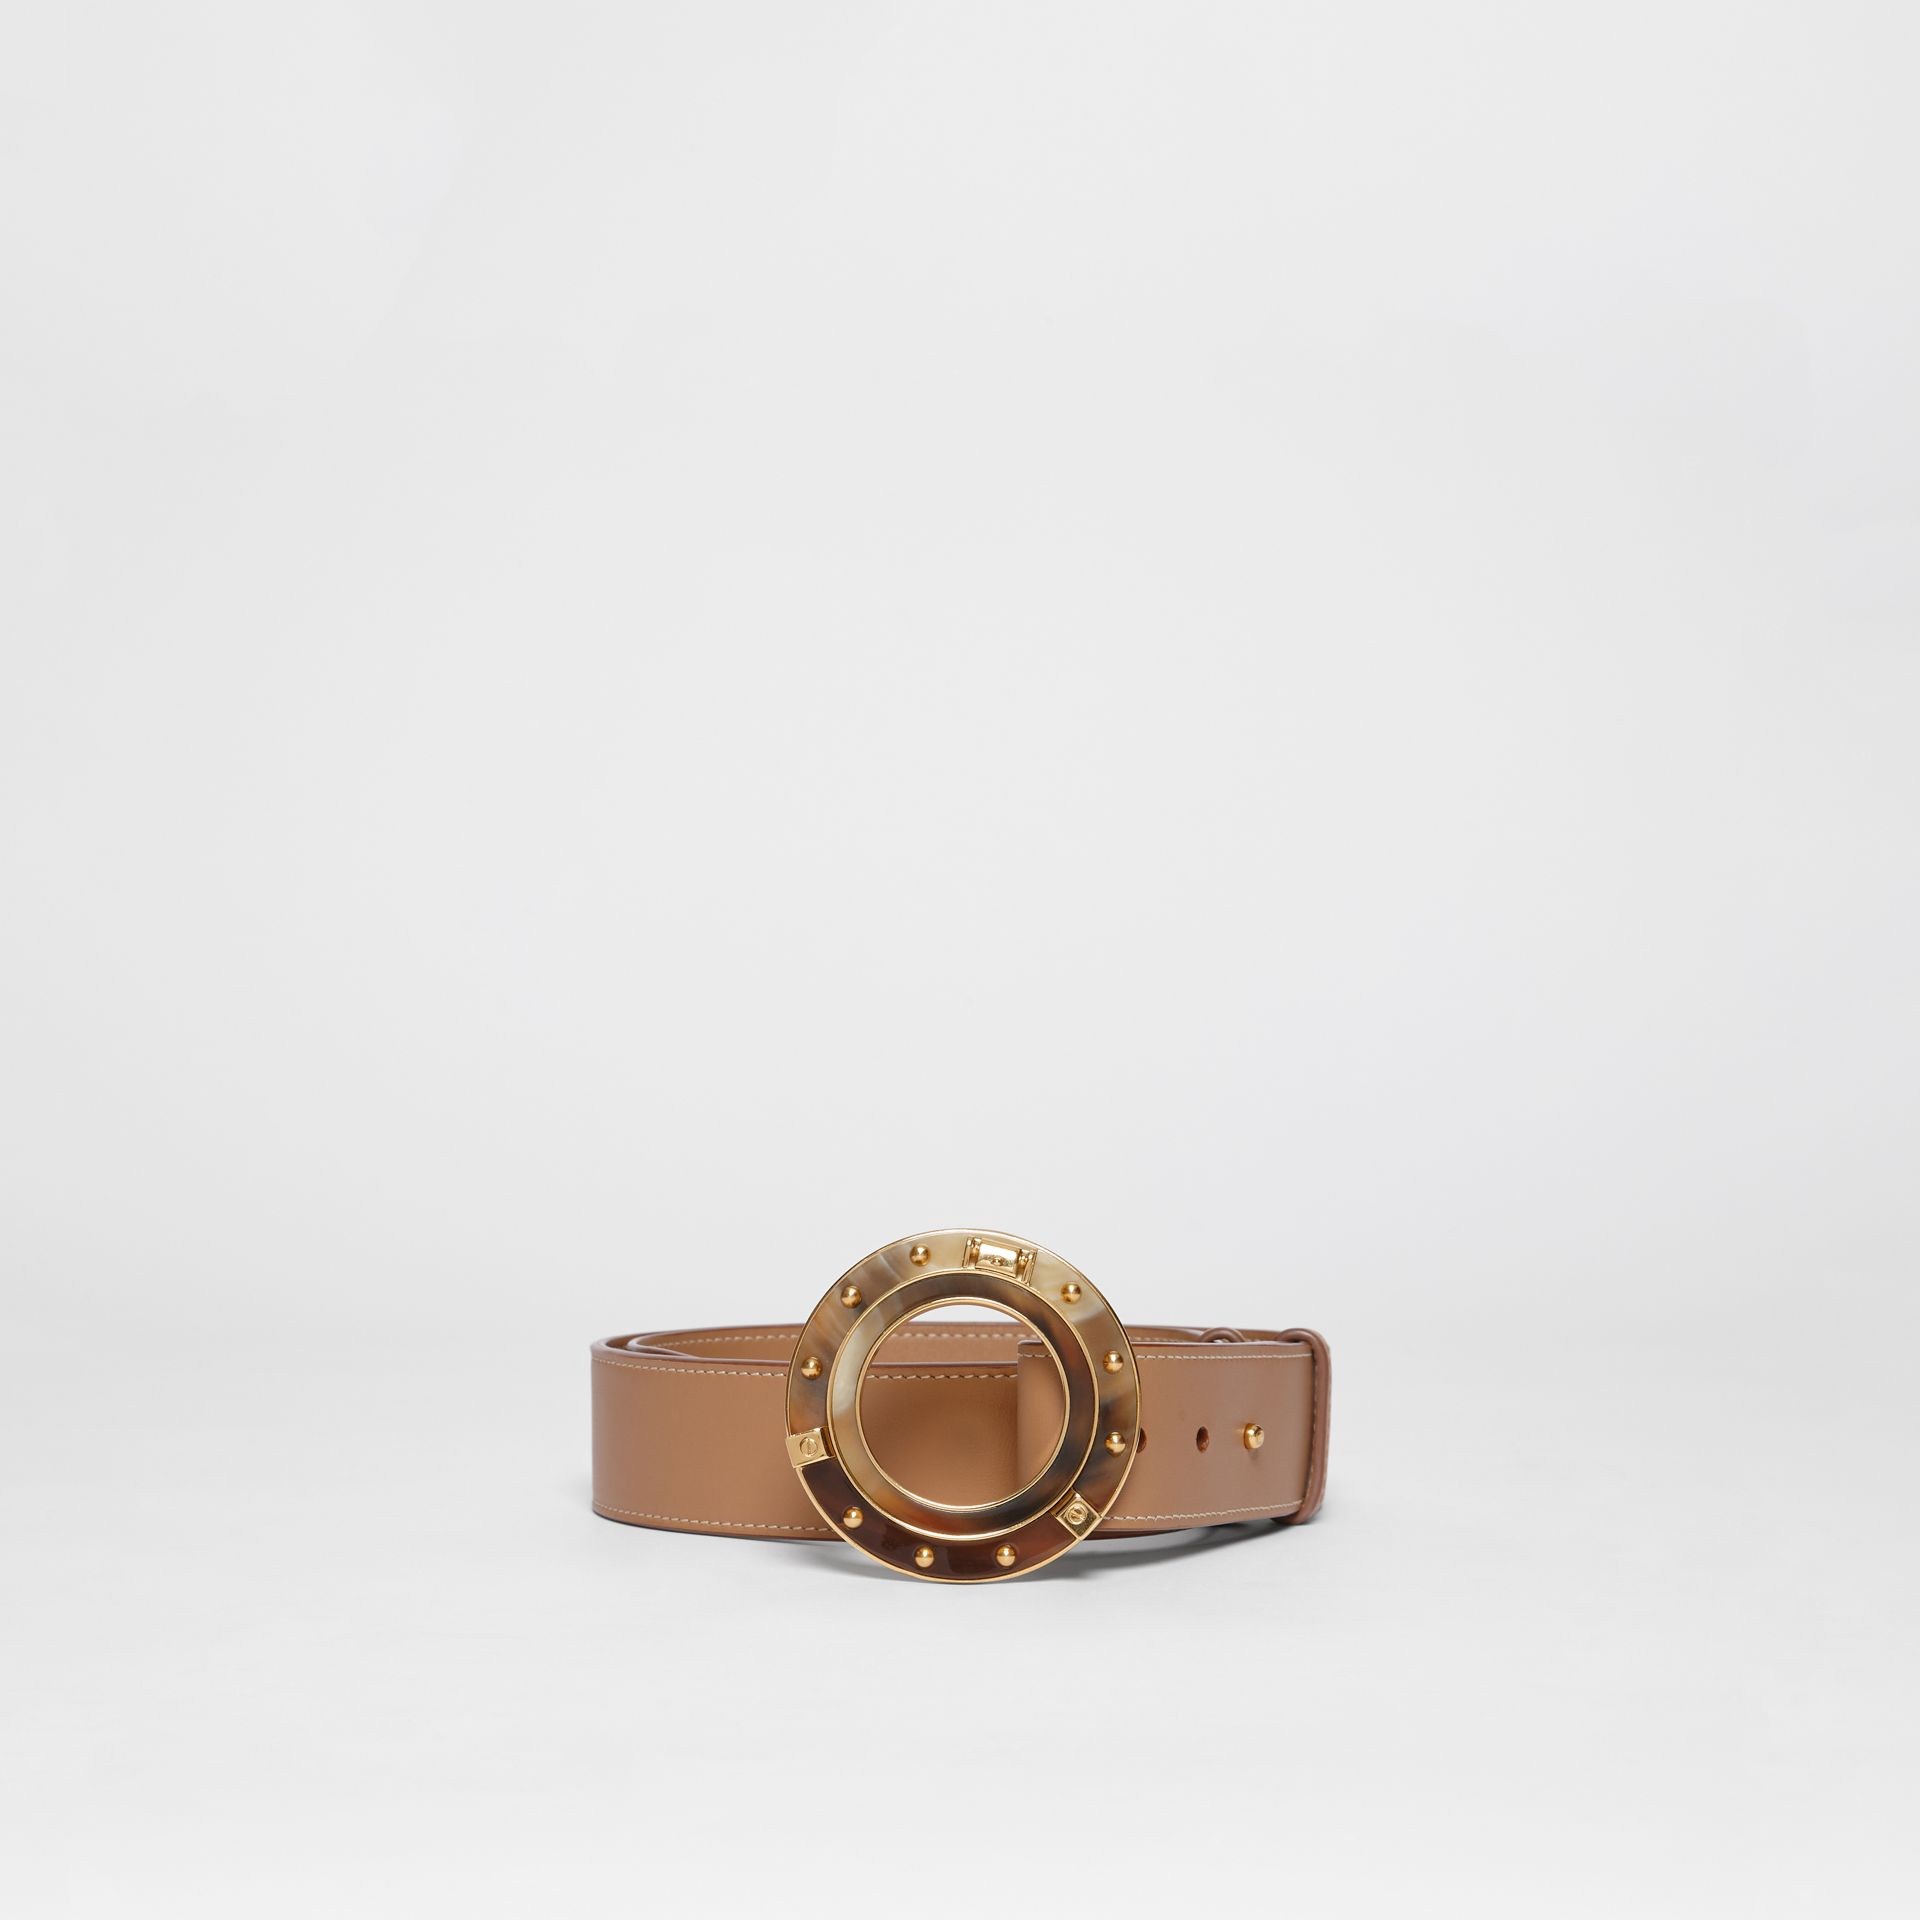 Porthole Buckle Leather Belt in Light Camel - Women | Burberry - gallery image 2